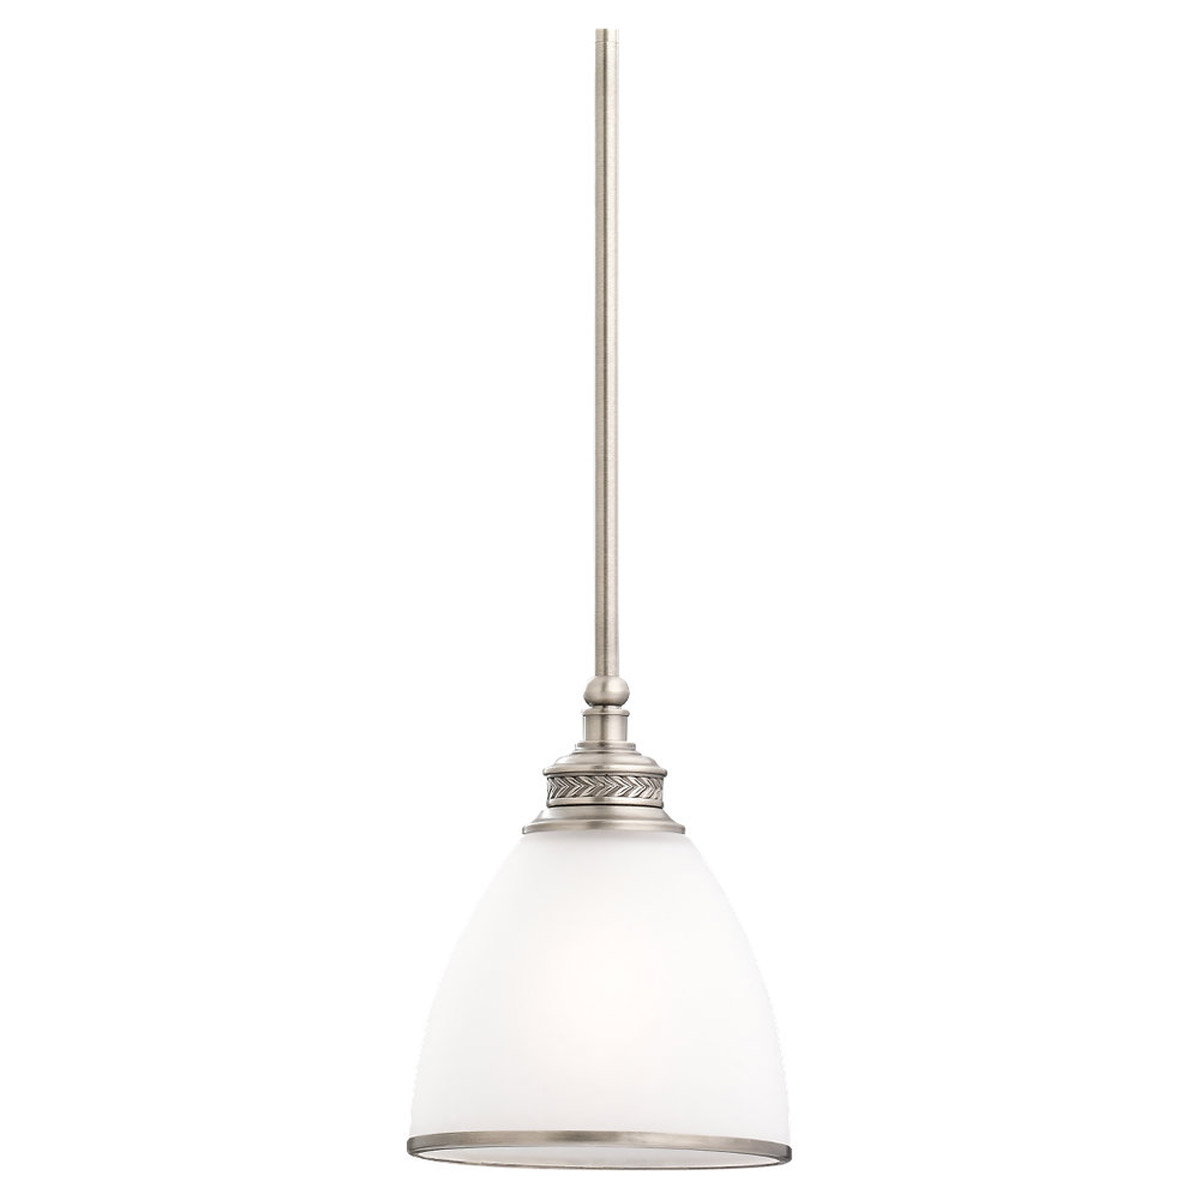 Sea Gull Lighting Laurel Leaf 1 Light Mini Pendant in Antique Brushed Nickel 61350-965